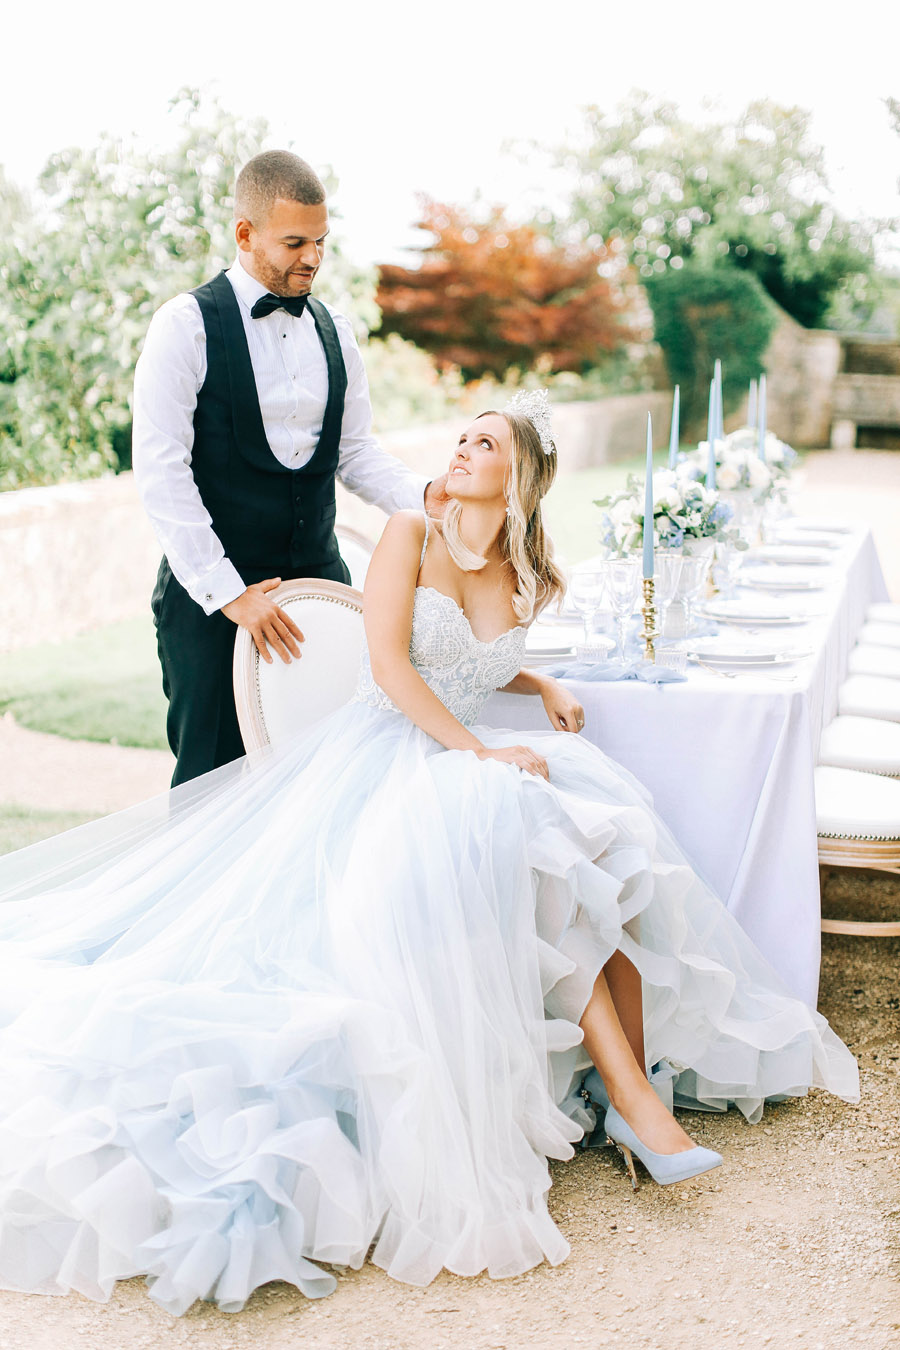 Enchanted Fairytale inspired shoot at Hamswell House, photography credit Charlotte Wise, wedding planner Lucy Ann Reid (28)